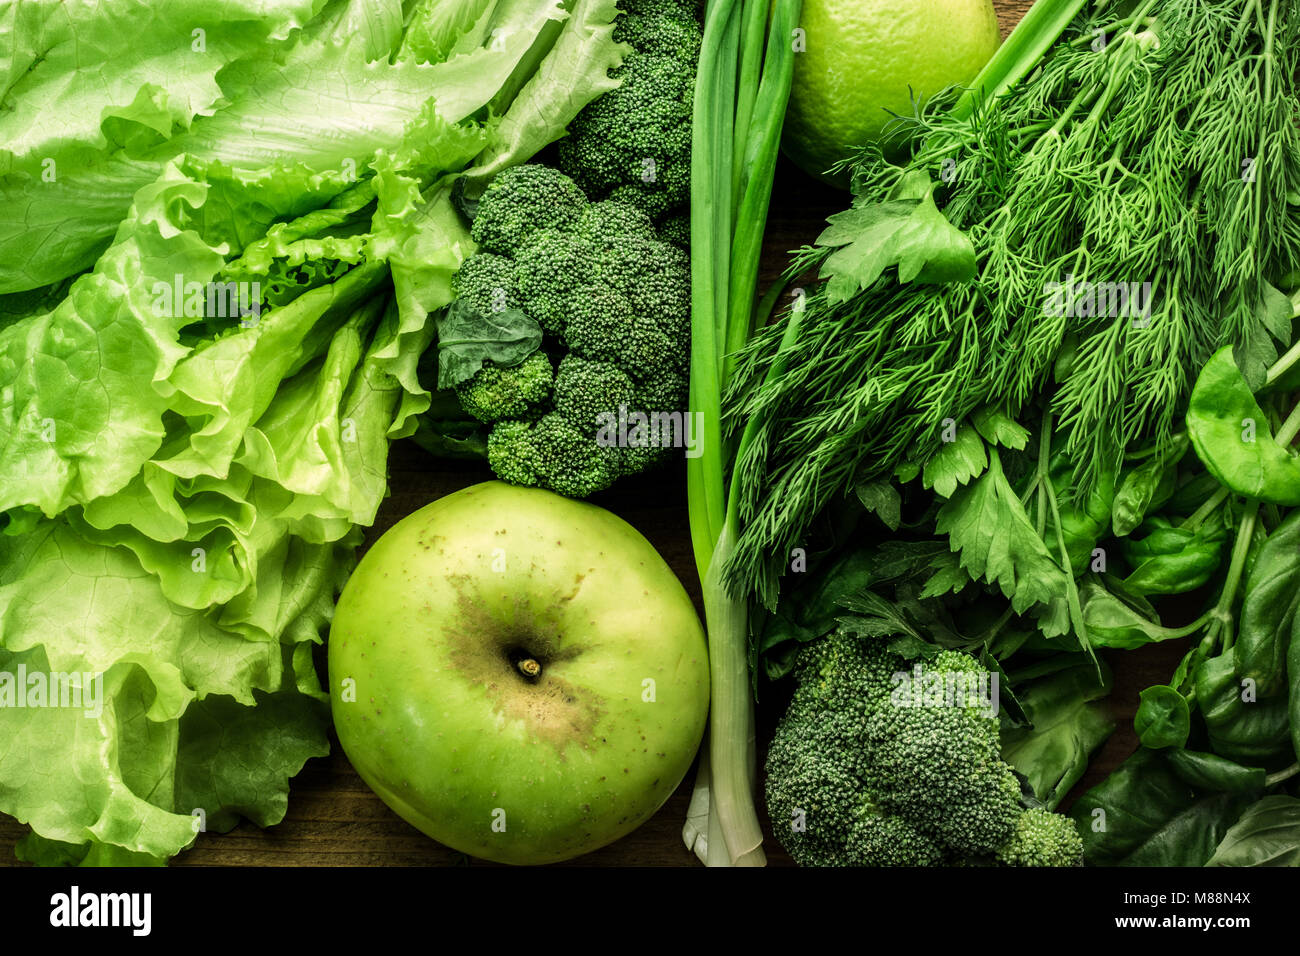 Green vegetables, fruits and greenery food background. Top view Stock Photo